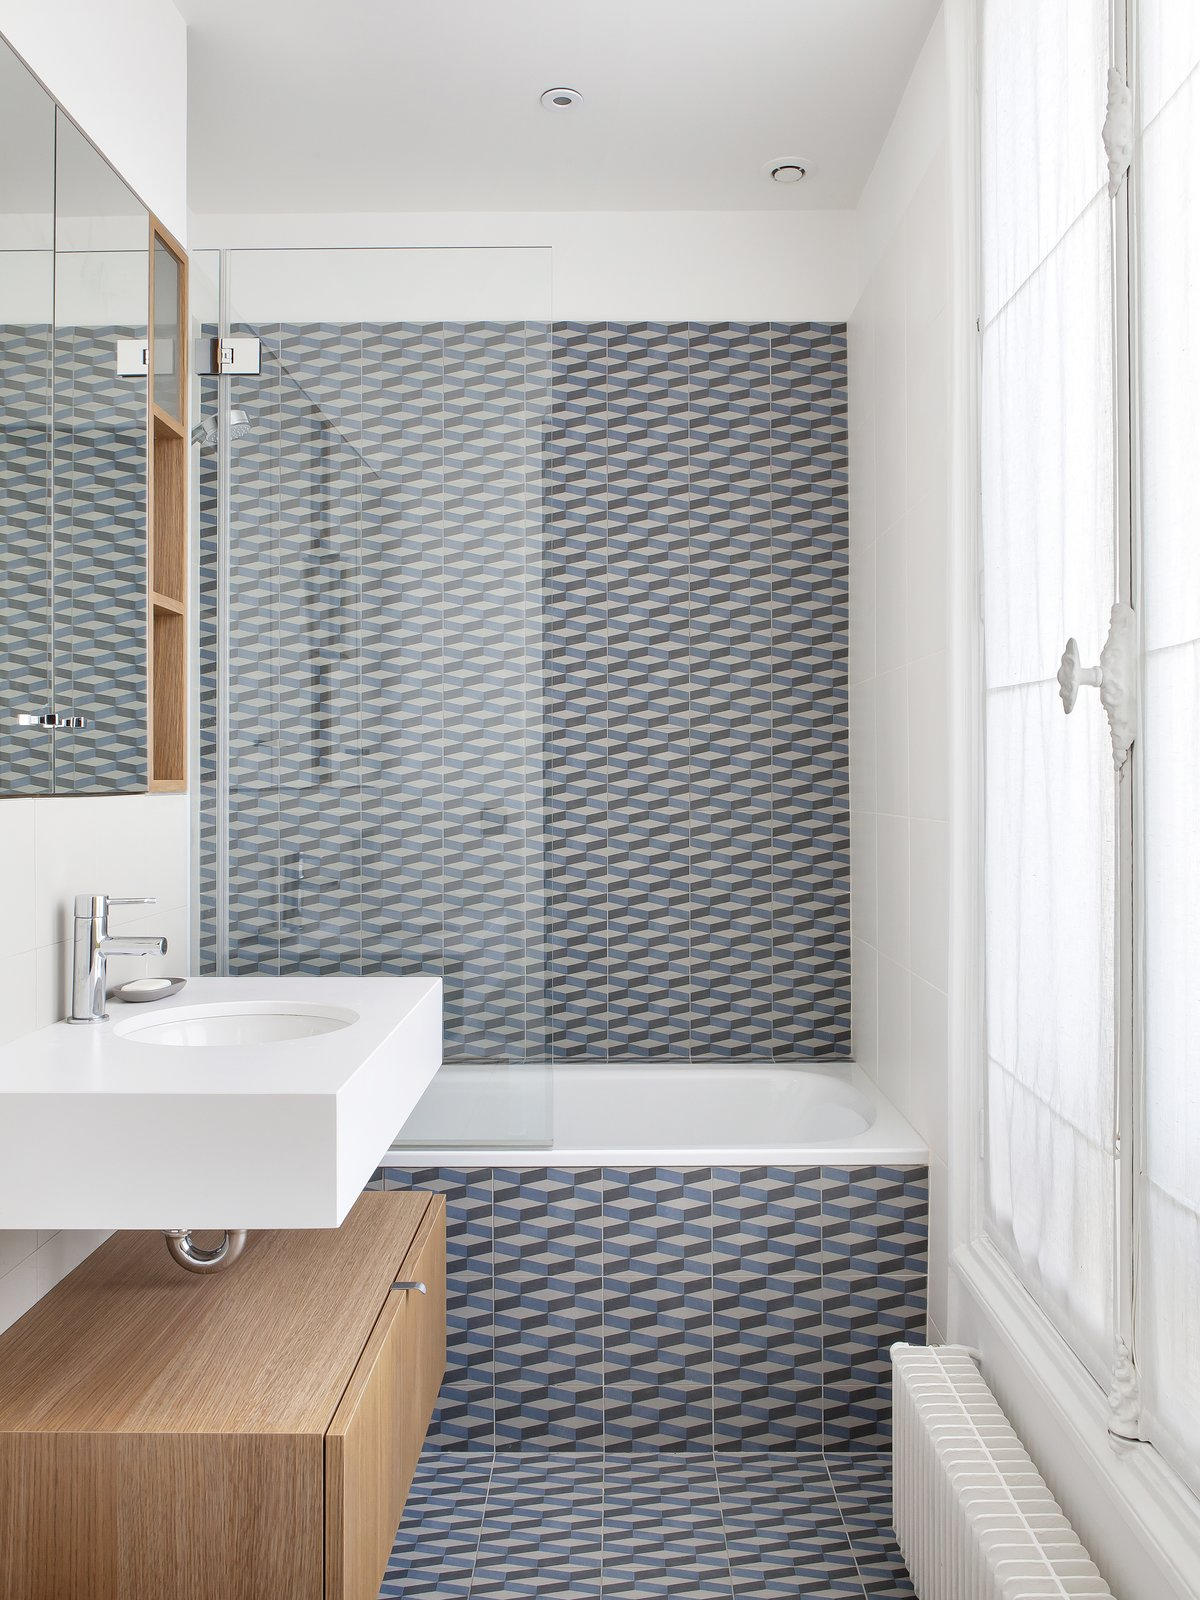 Bath, Soaking, Enclosed, Recessed, Porcelain Tile, Wall Mount, Alcove, and Undermount The children's bathroom features Mutina's azulej cubo grigio floor and wall tiling.  Best Bath Wall Mount Recessed Undermount Photos from A Parisian Abode Is Reborn With a Fresh, Unexpected Color Palette